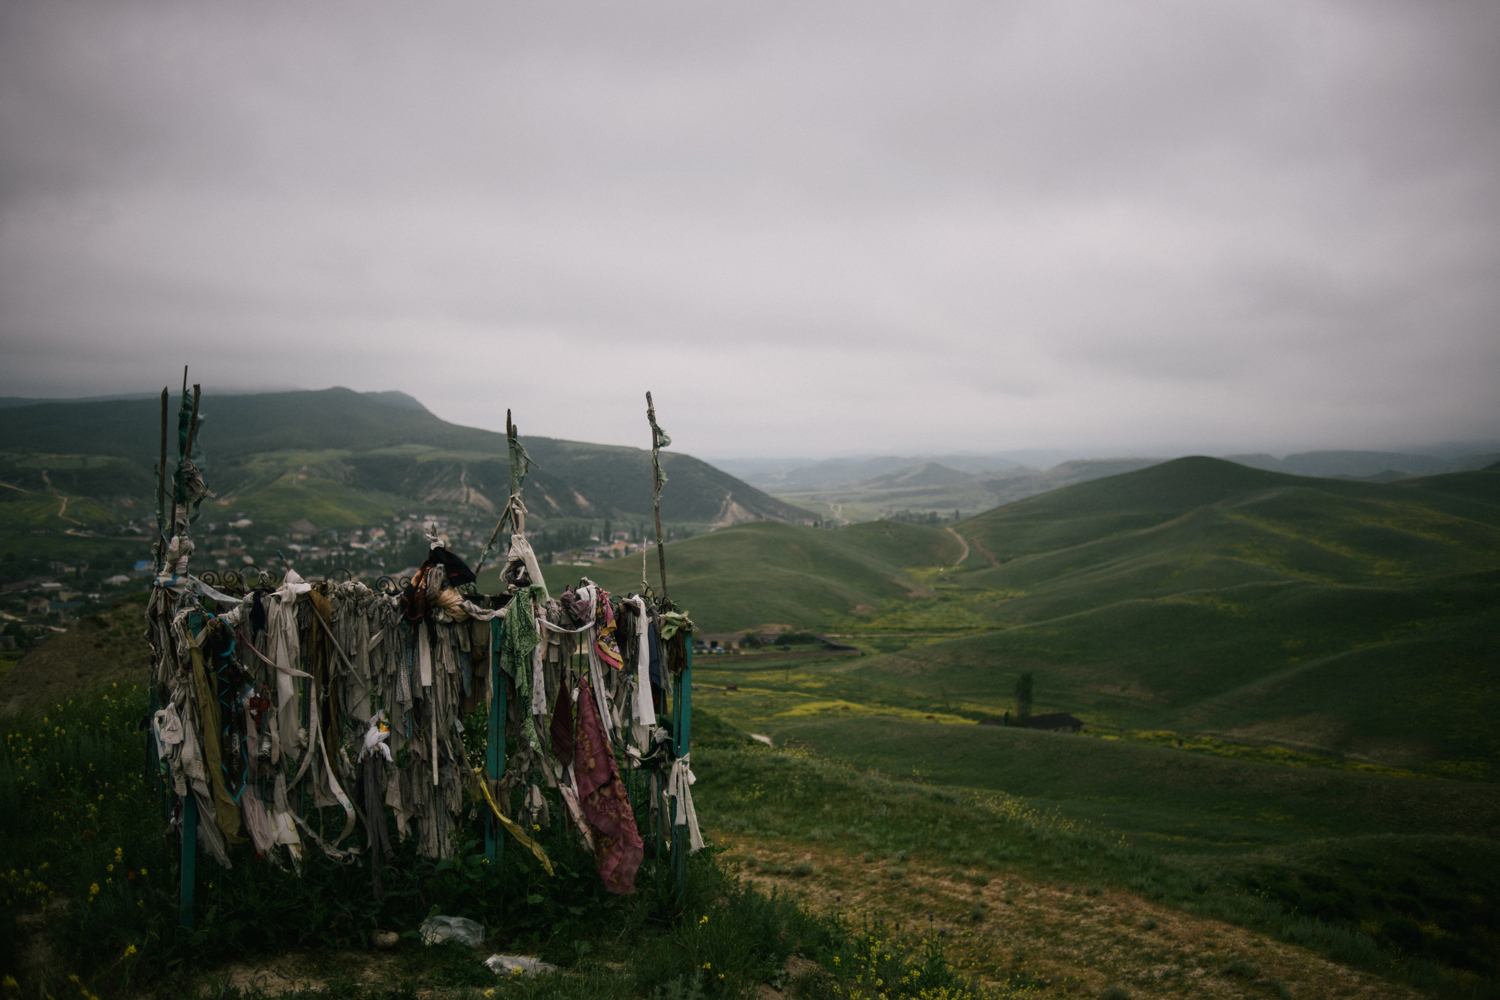 May 12, 2013. A grave above the sleepy village of Utamysh, Russia.